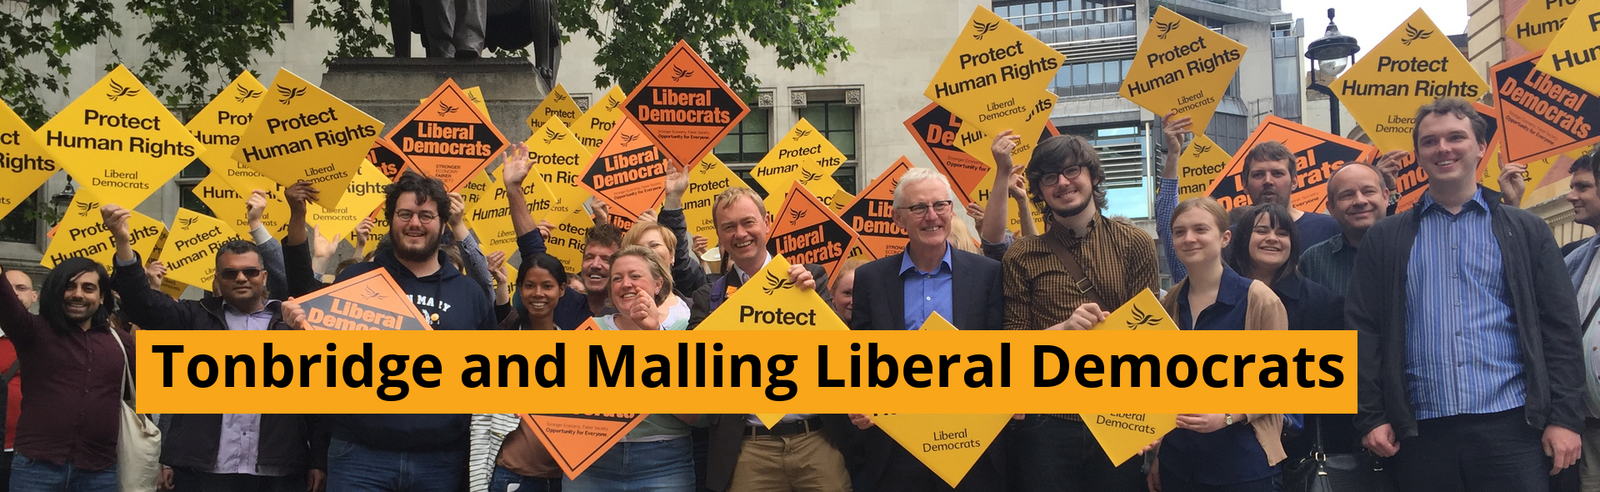 Tonbridge and Malling Liberal Democrats